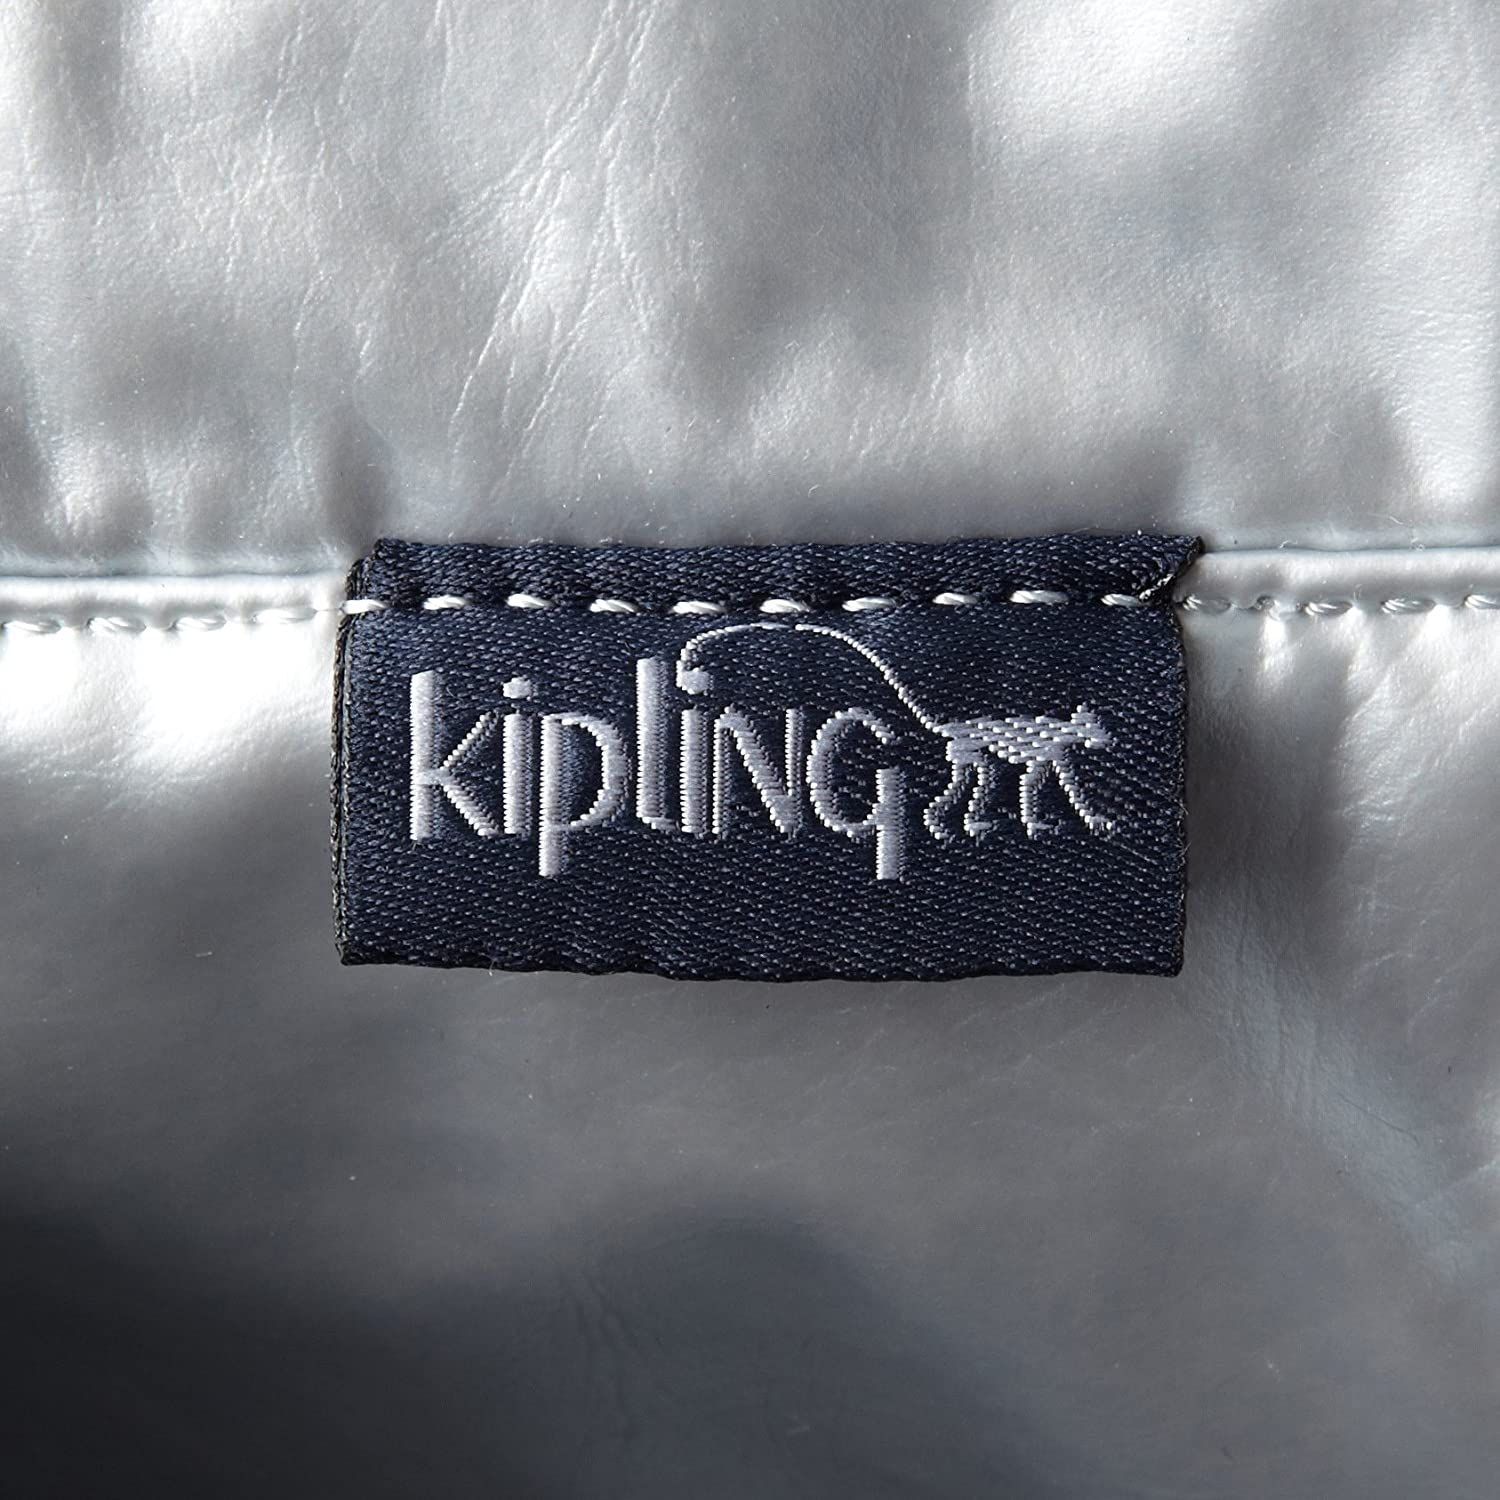 Kipling Kichirou, True Blue, One Size: LP - Kipling Vanity Fair Brands:  Amazon.ca: Luggage & Bags